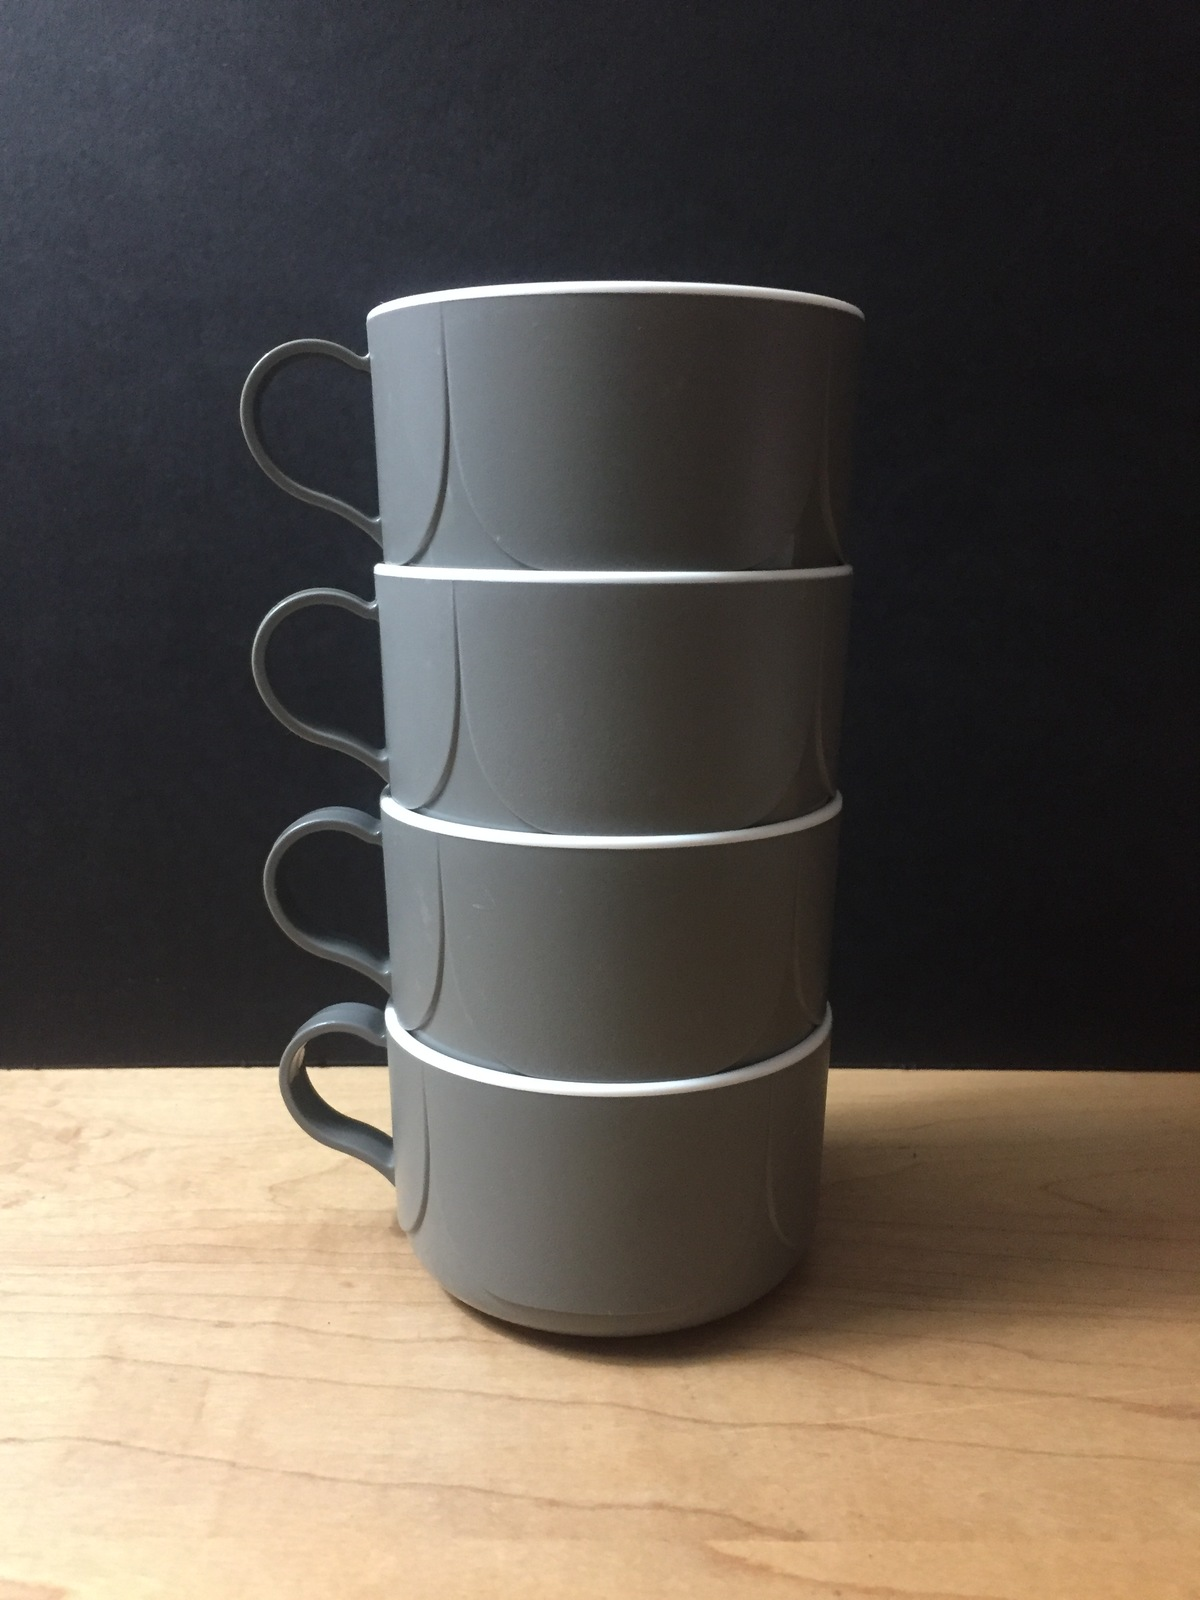 Vintage 70s Northwest Airlines Grey Inflight Coffee Service Cups